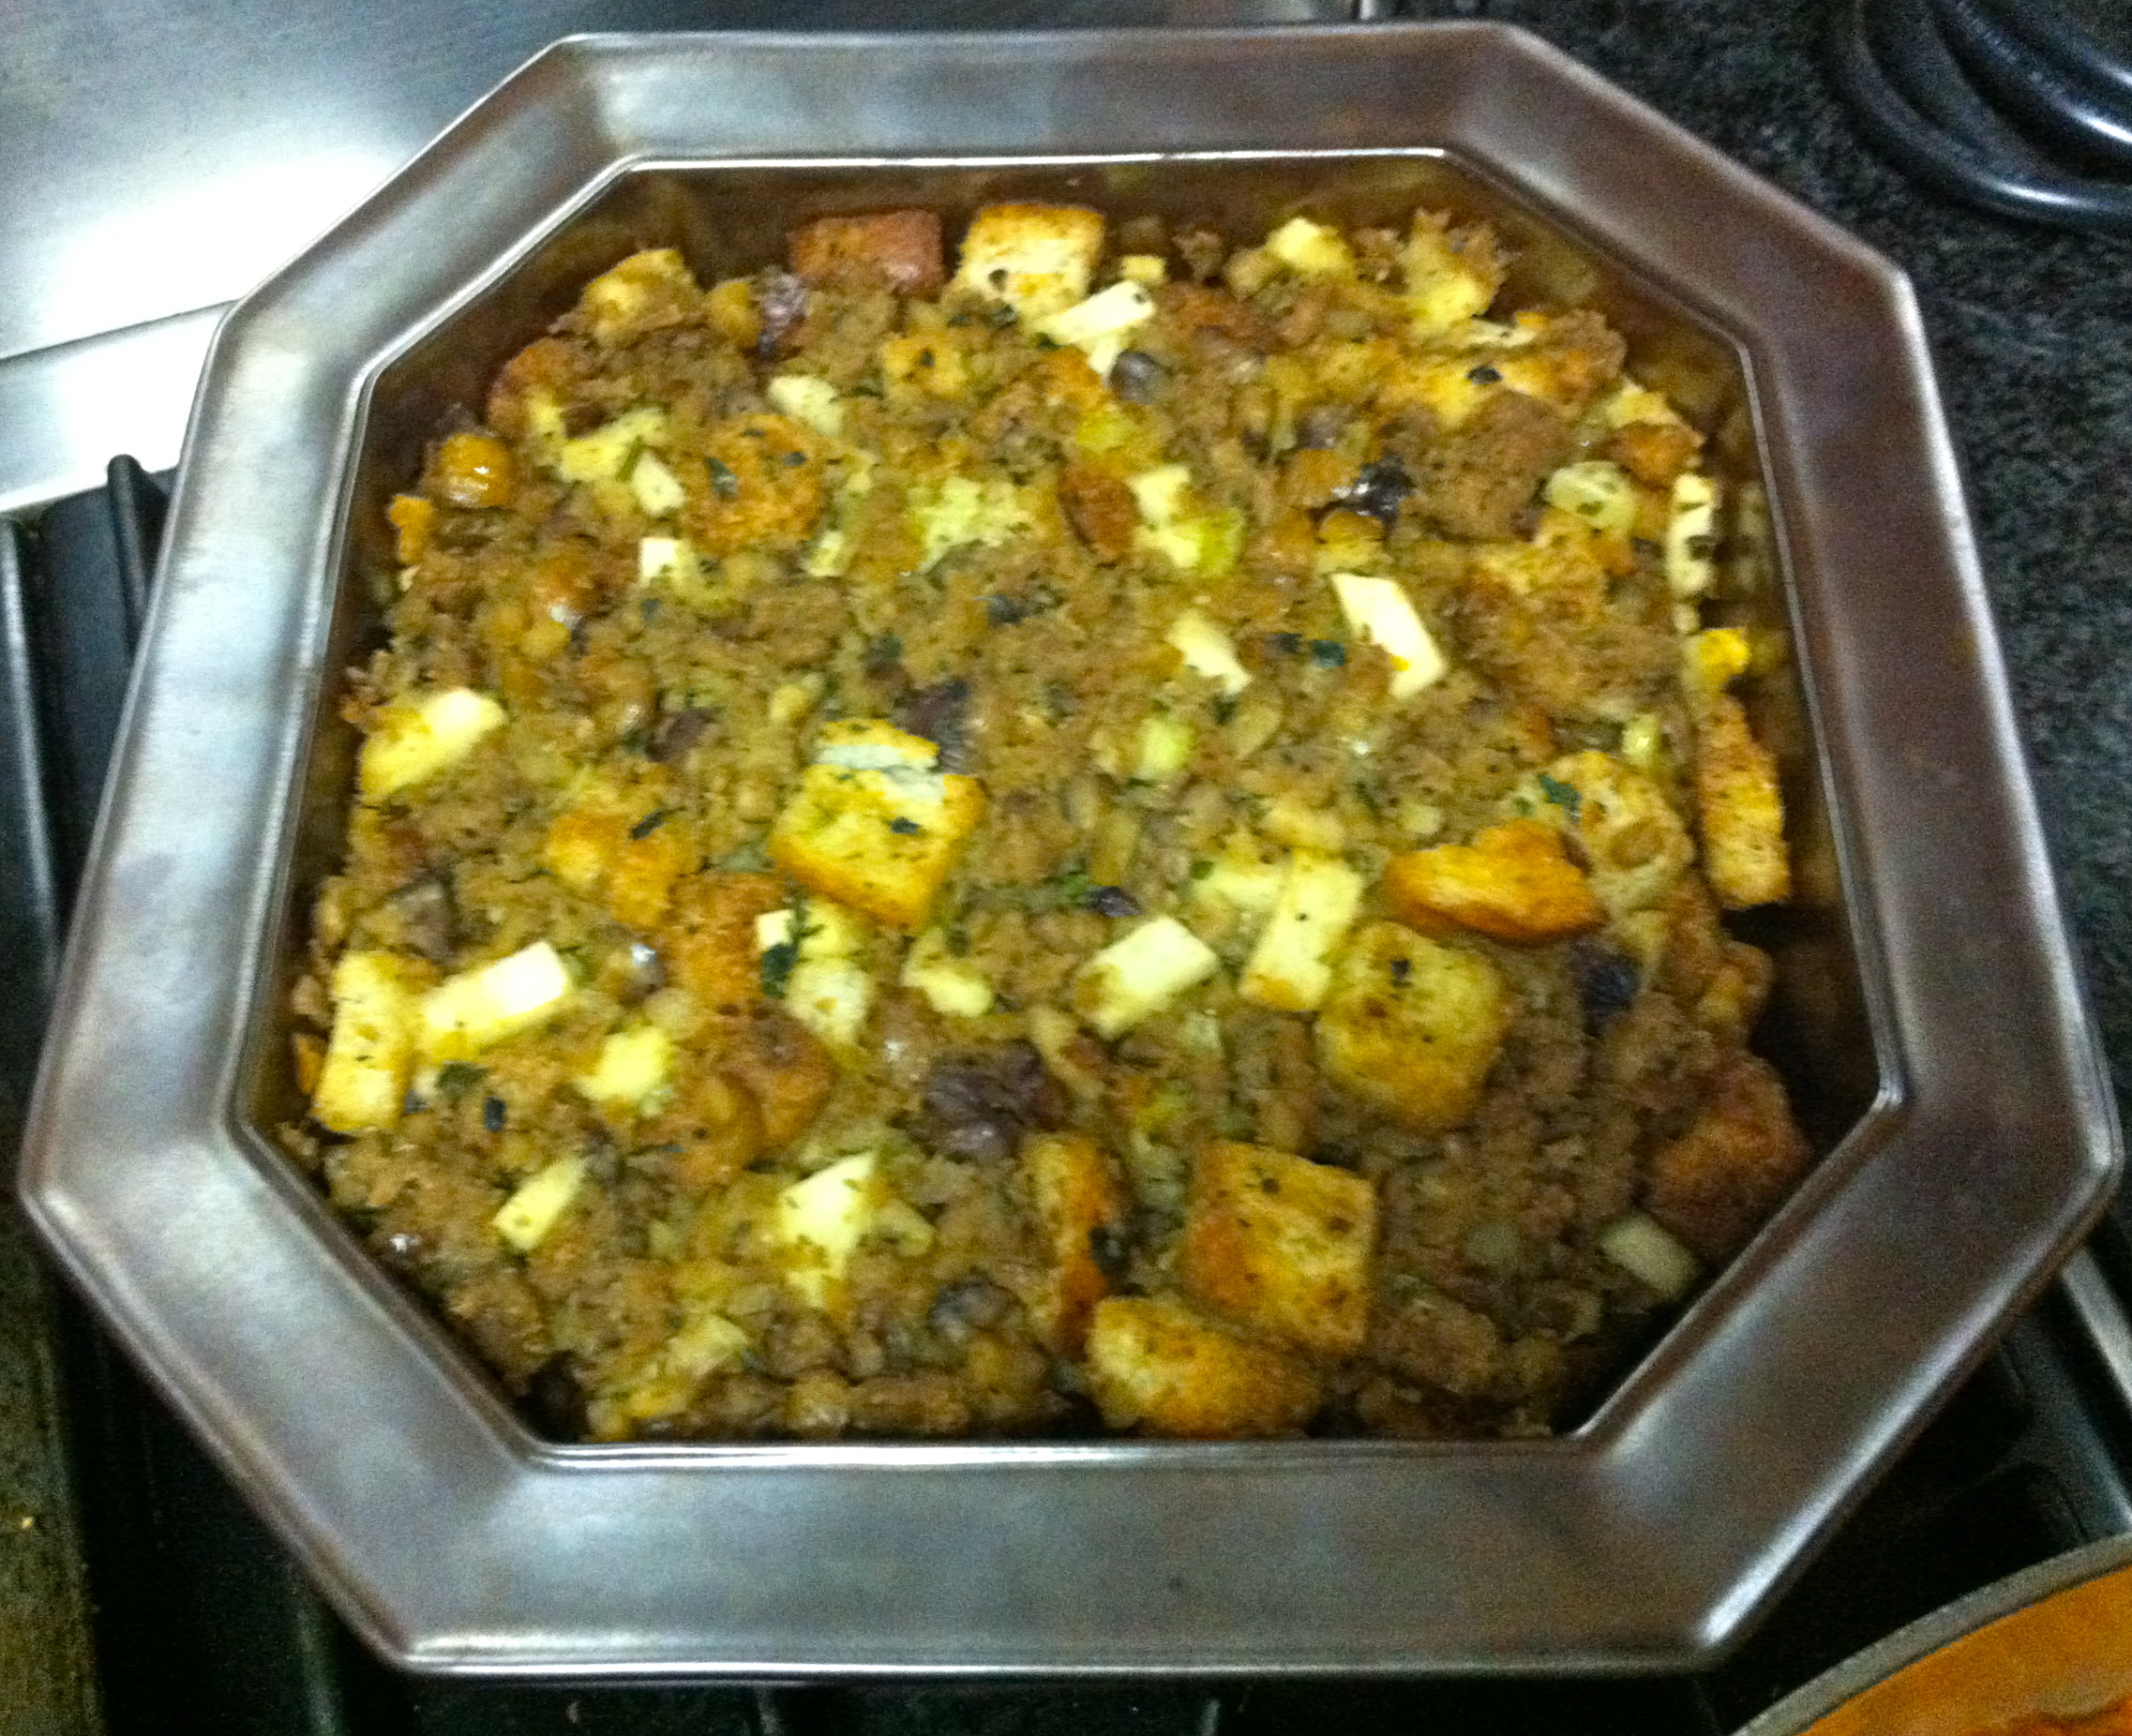 This vegan stuffing is amazingly delicious with Field Roast sausage and apples.